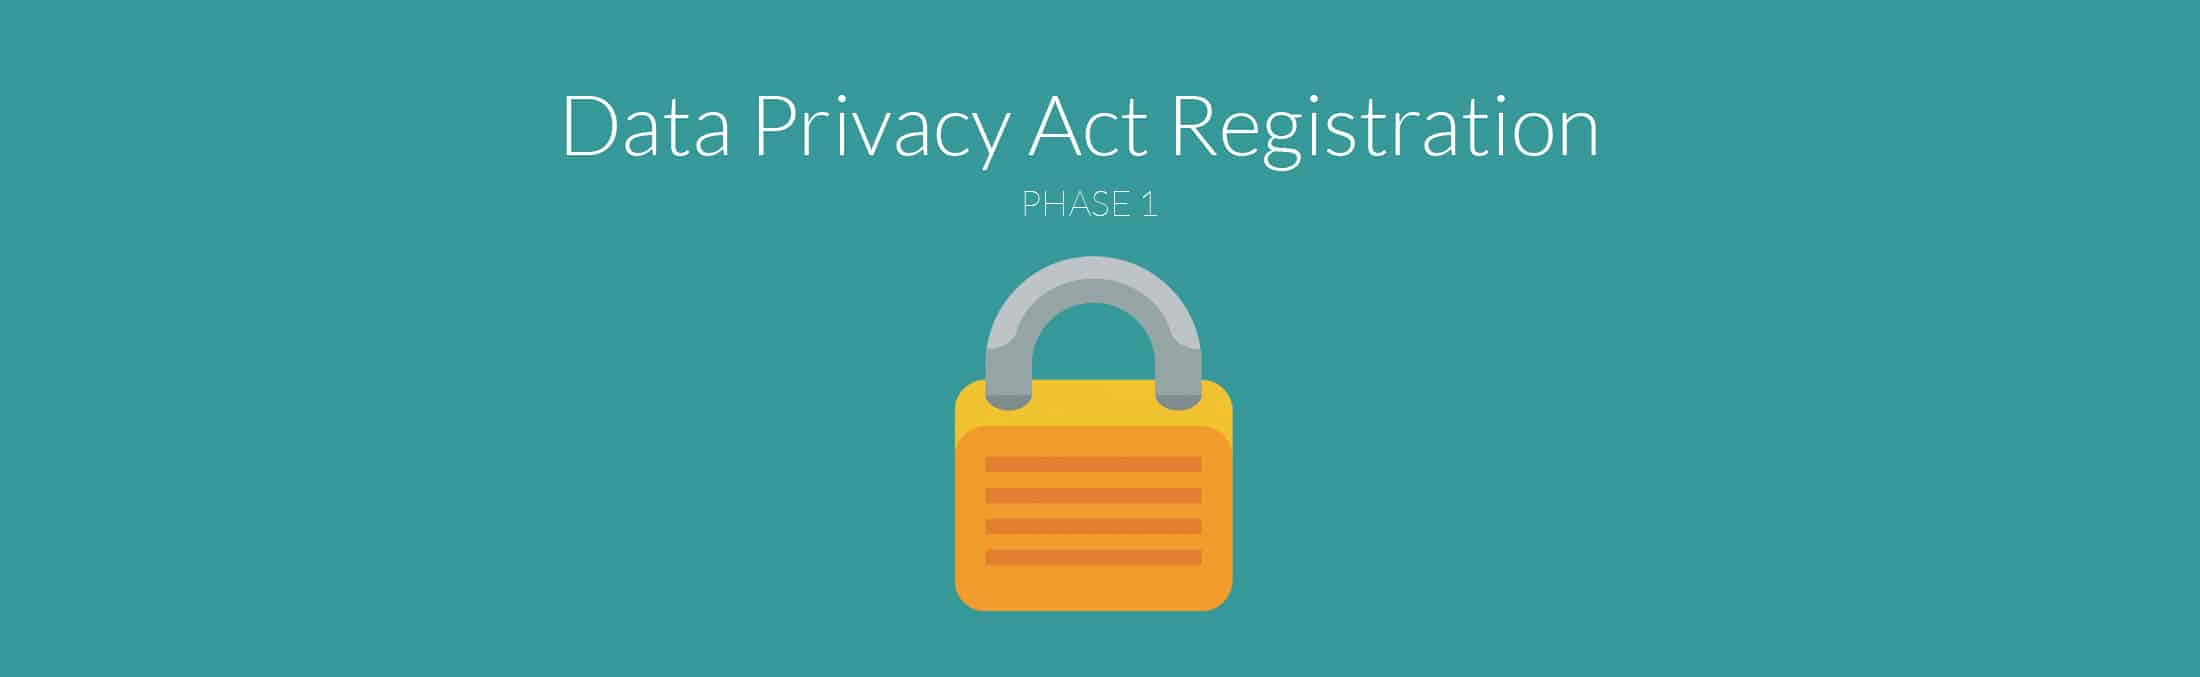 National Privacy Commission (NPC) Data Privacy Act (DPA) Registration for Doctors in the Philippines Phase 1